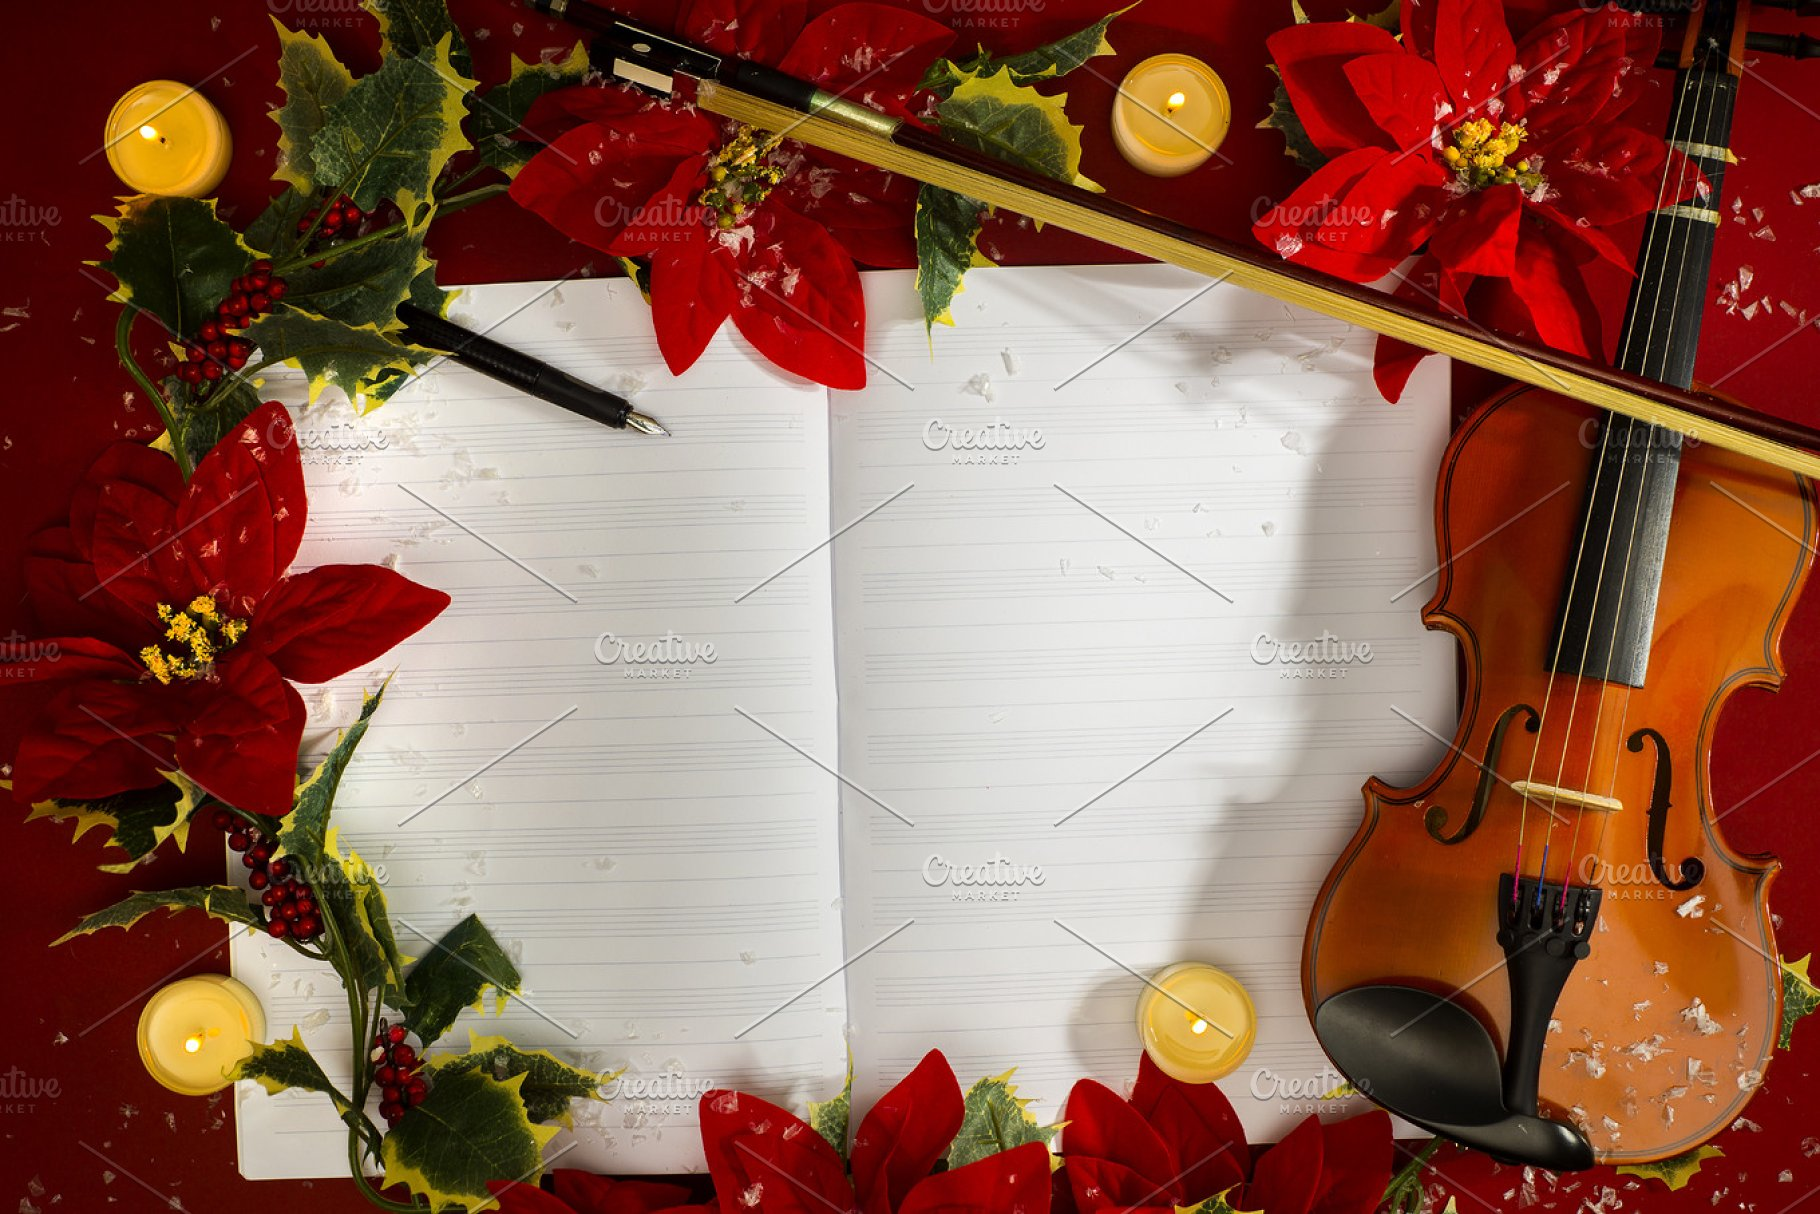 Christmas Violin.Violin And Open Music Manuscript On The Red Background Christmas Concept